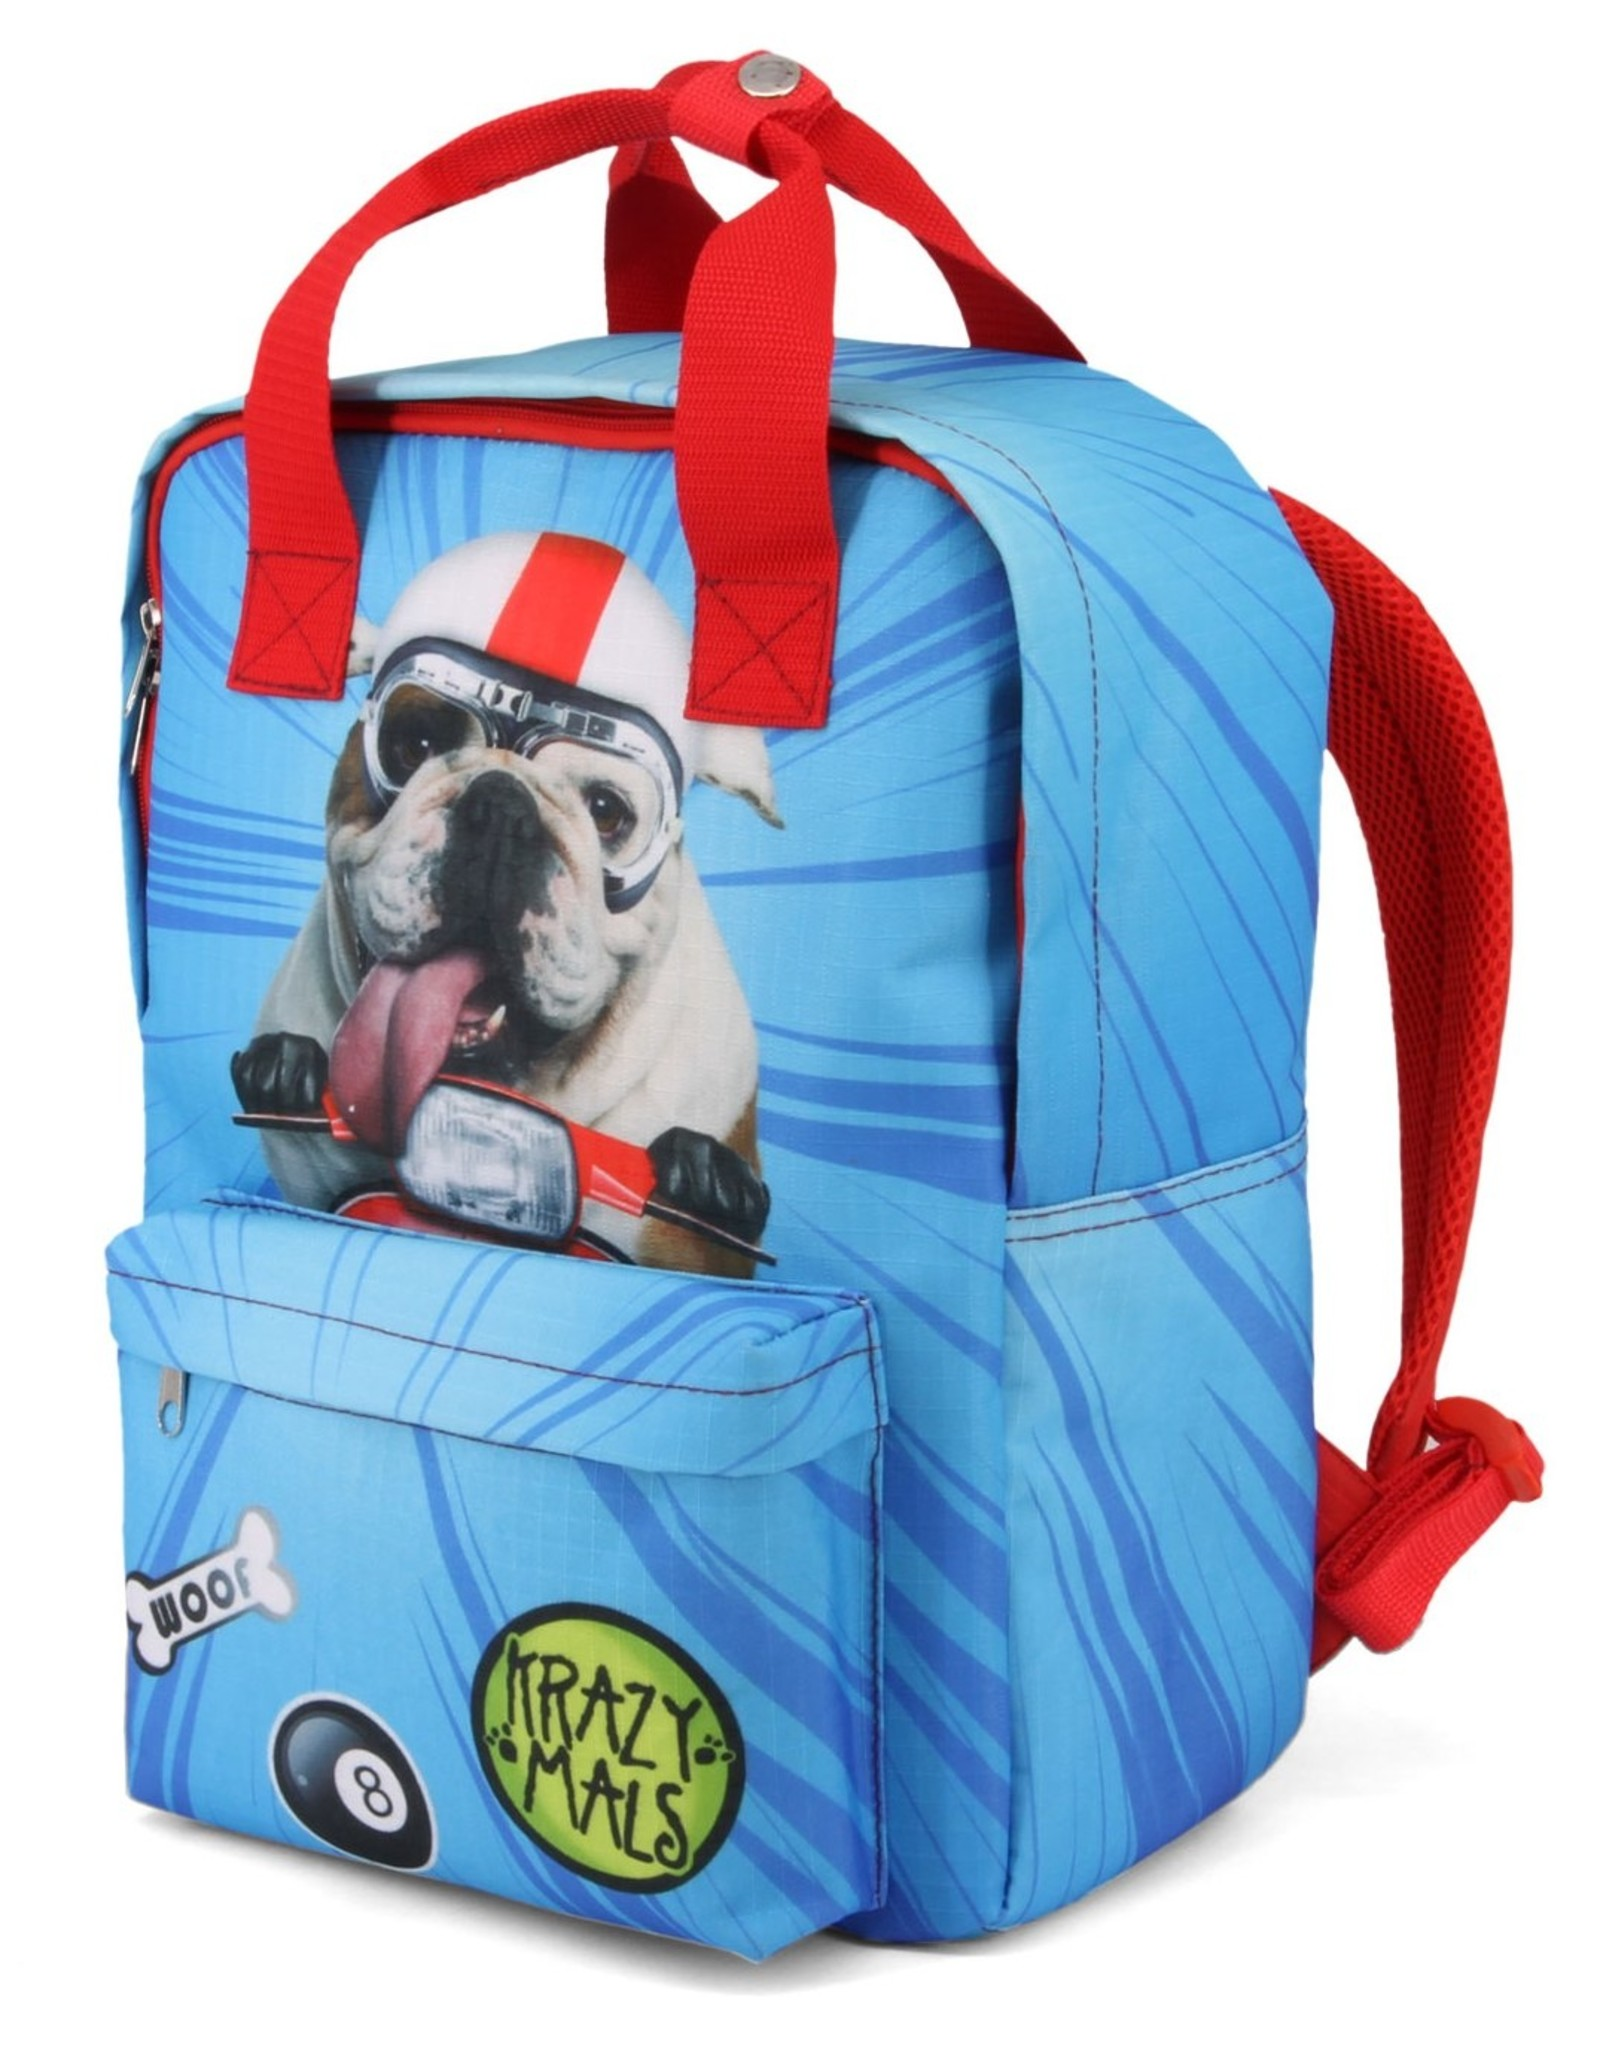 Krazymals Backpacks  and fanny packs - Krazymals backpack Bulldog wearing helmet and goggles